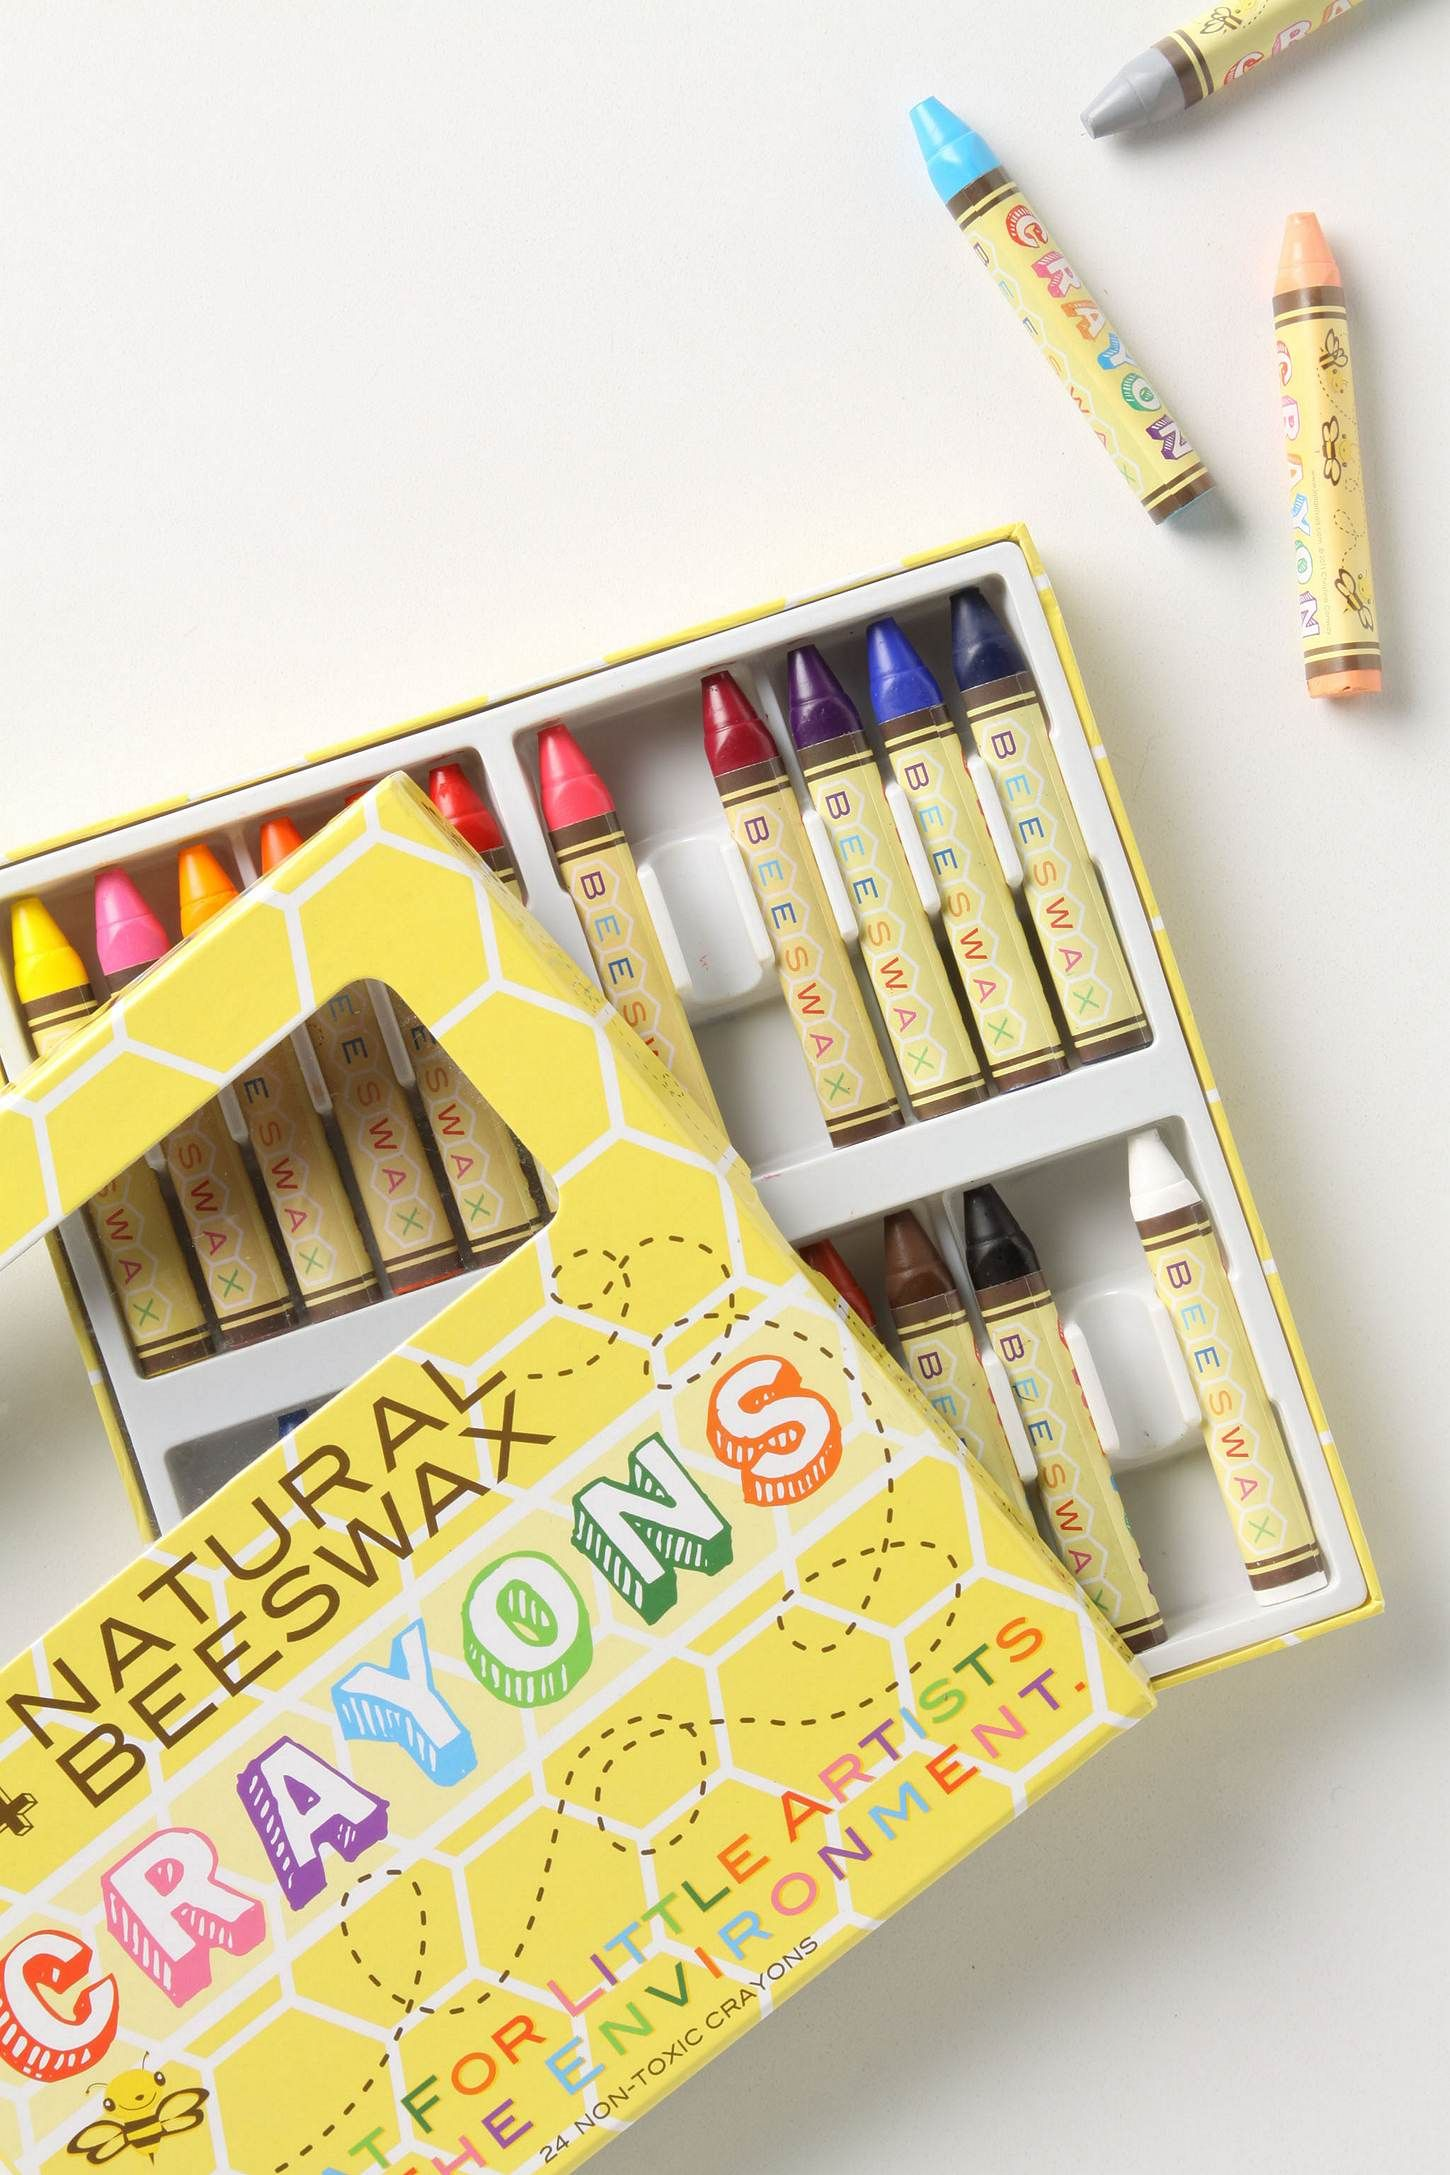 Toys For Tots Letter Head : Natural beeswax crayons non toxic kids crafts toys